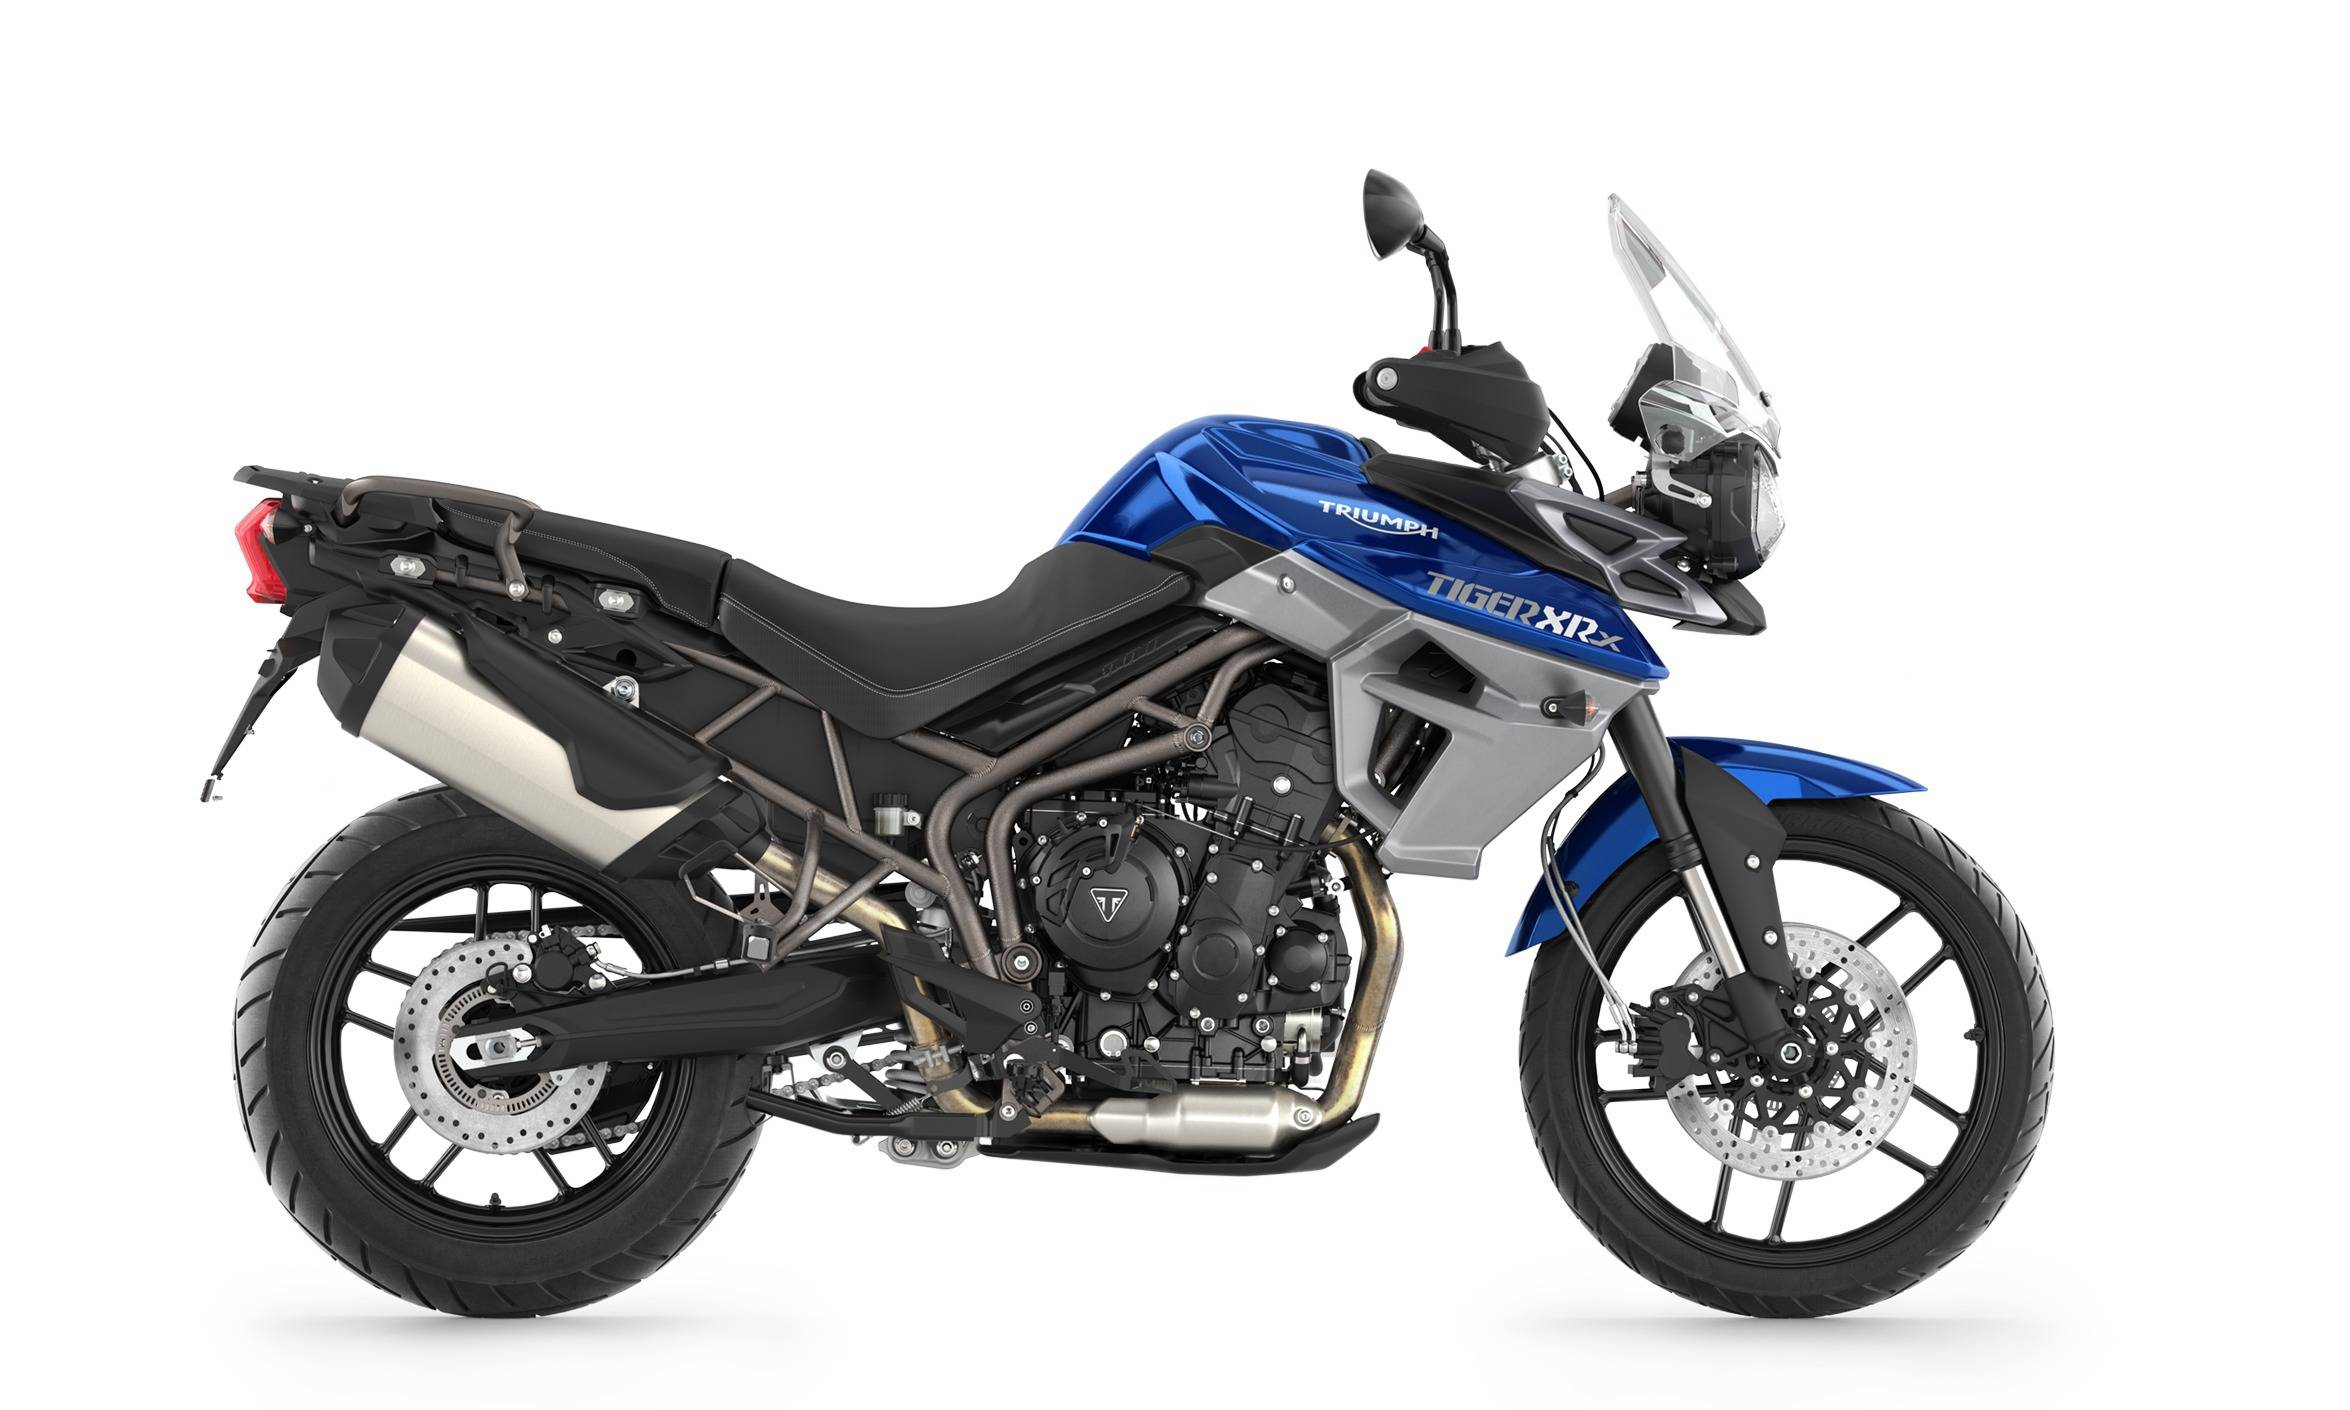 Triumph Tiger 800 Price Gst Rates Triumph Tiger 800